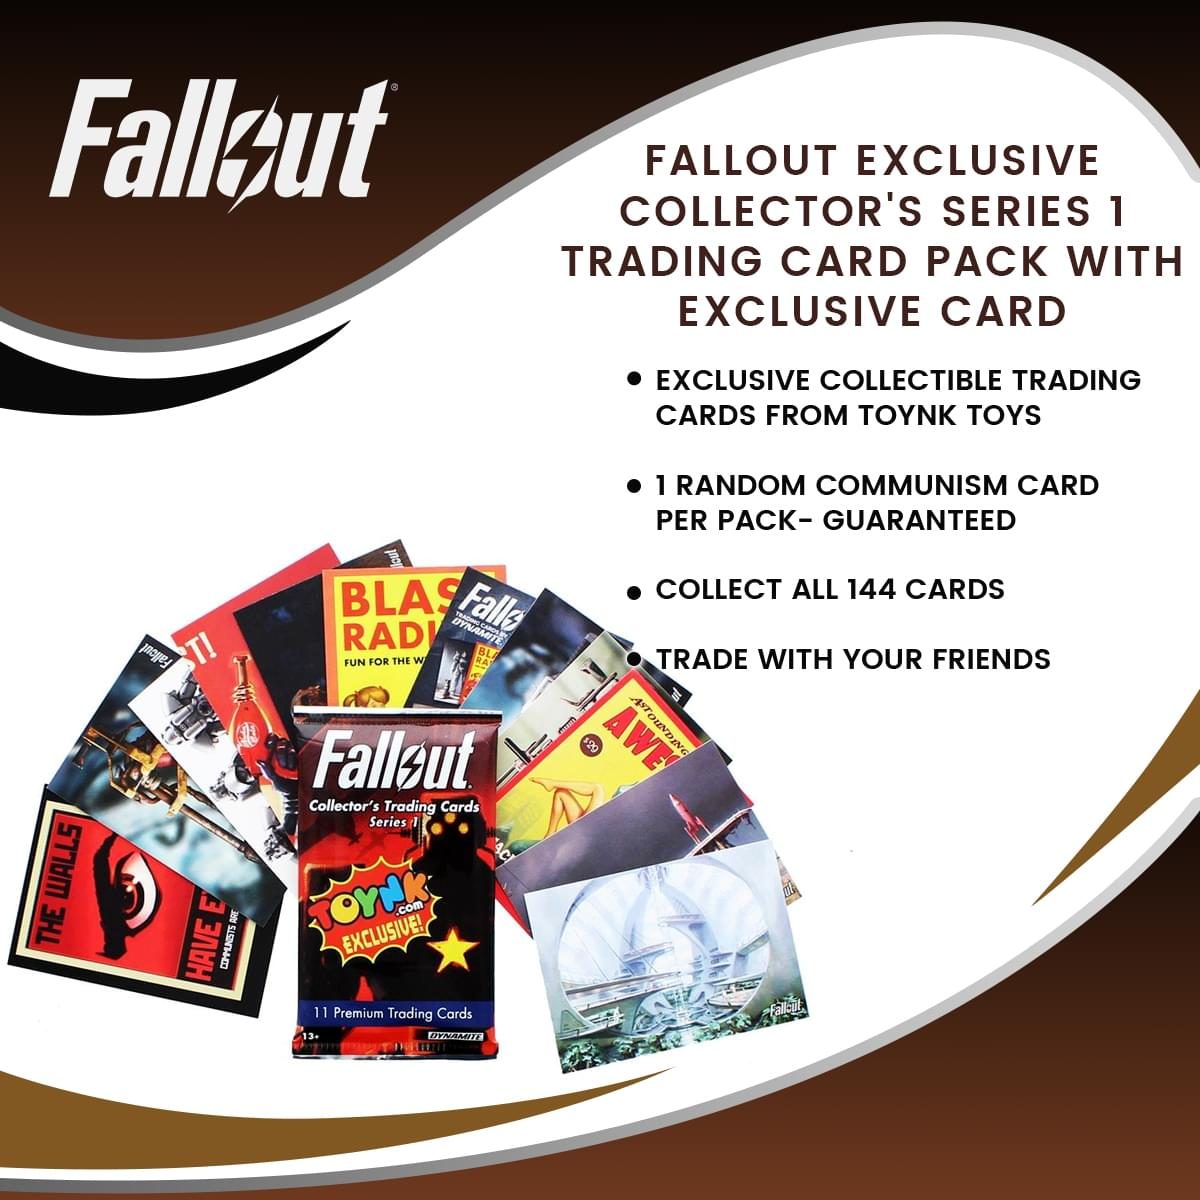 Fallout Exclusive Collector's Series 1 Trading Card Pack with Exclusive Card